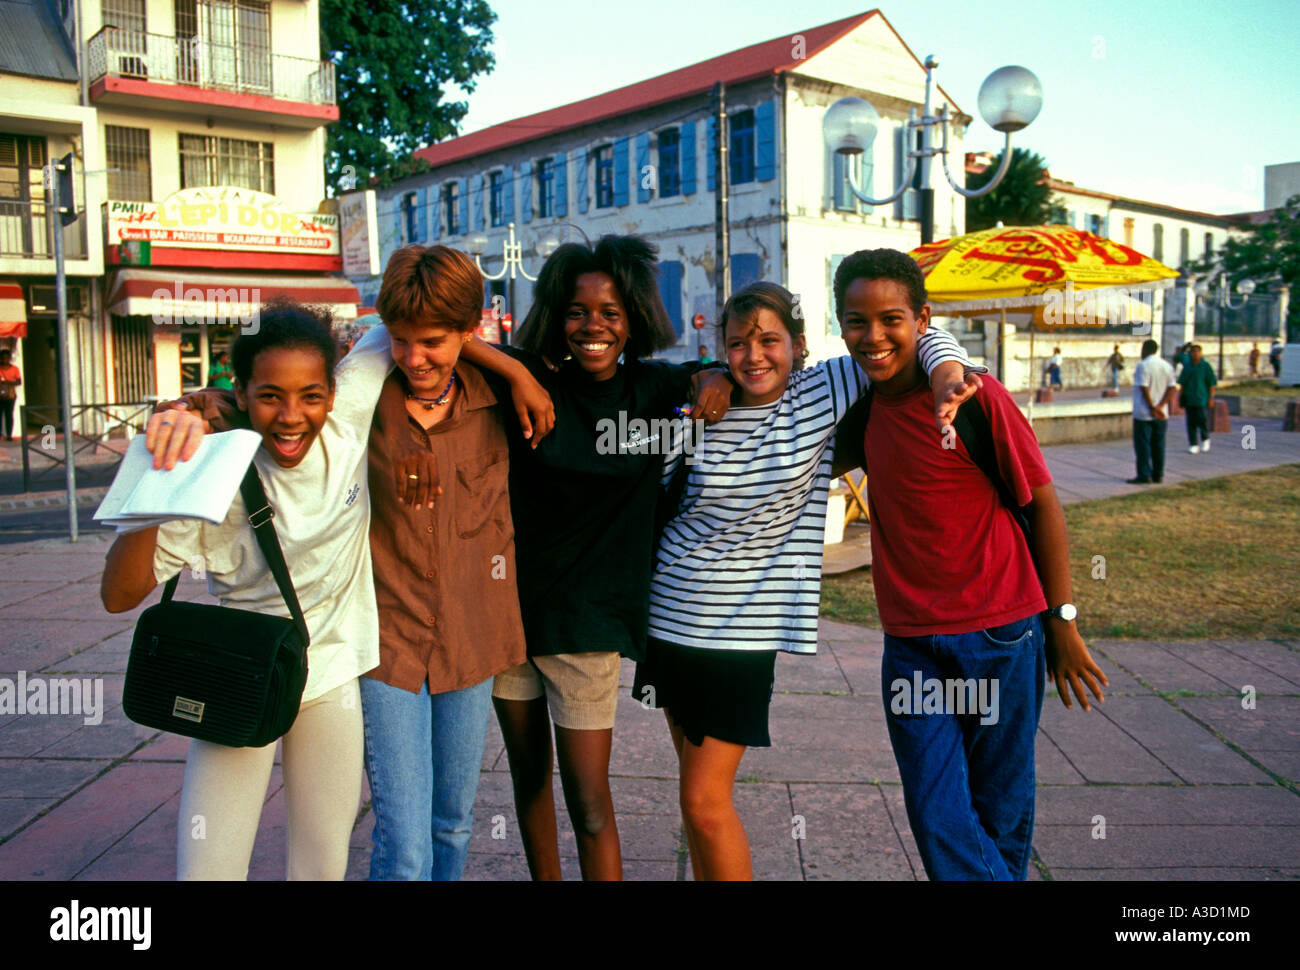 French students, students, teen girls, teen boys, teenagers, Pointe-a-Pitre, Grande-Terre, Guadeloupe, France, French West Indies - Stock Image